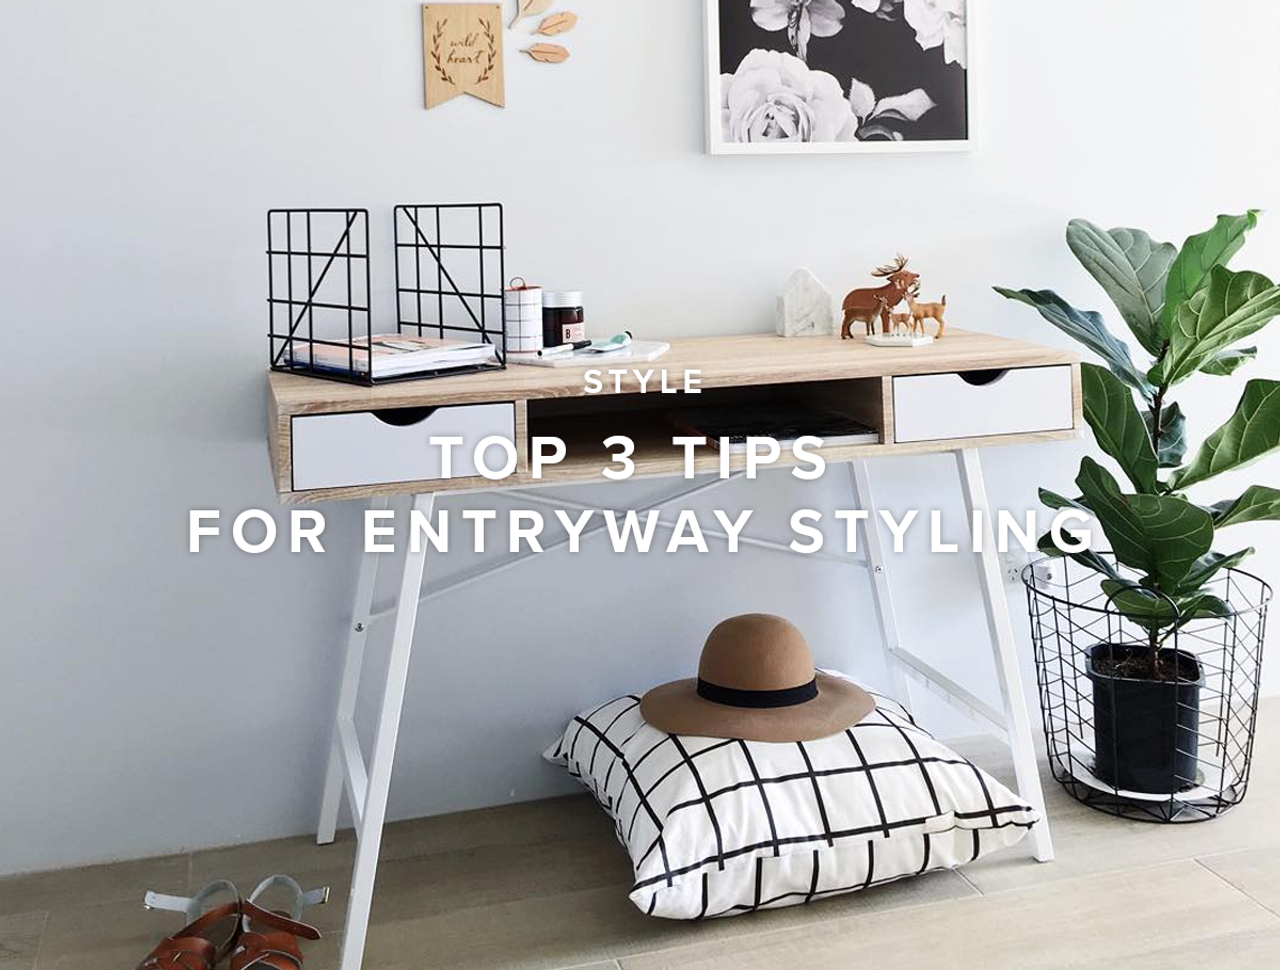 Top 3 Tips for Entryway Styling